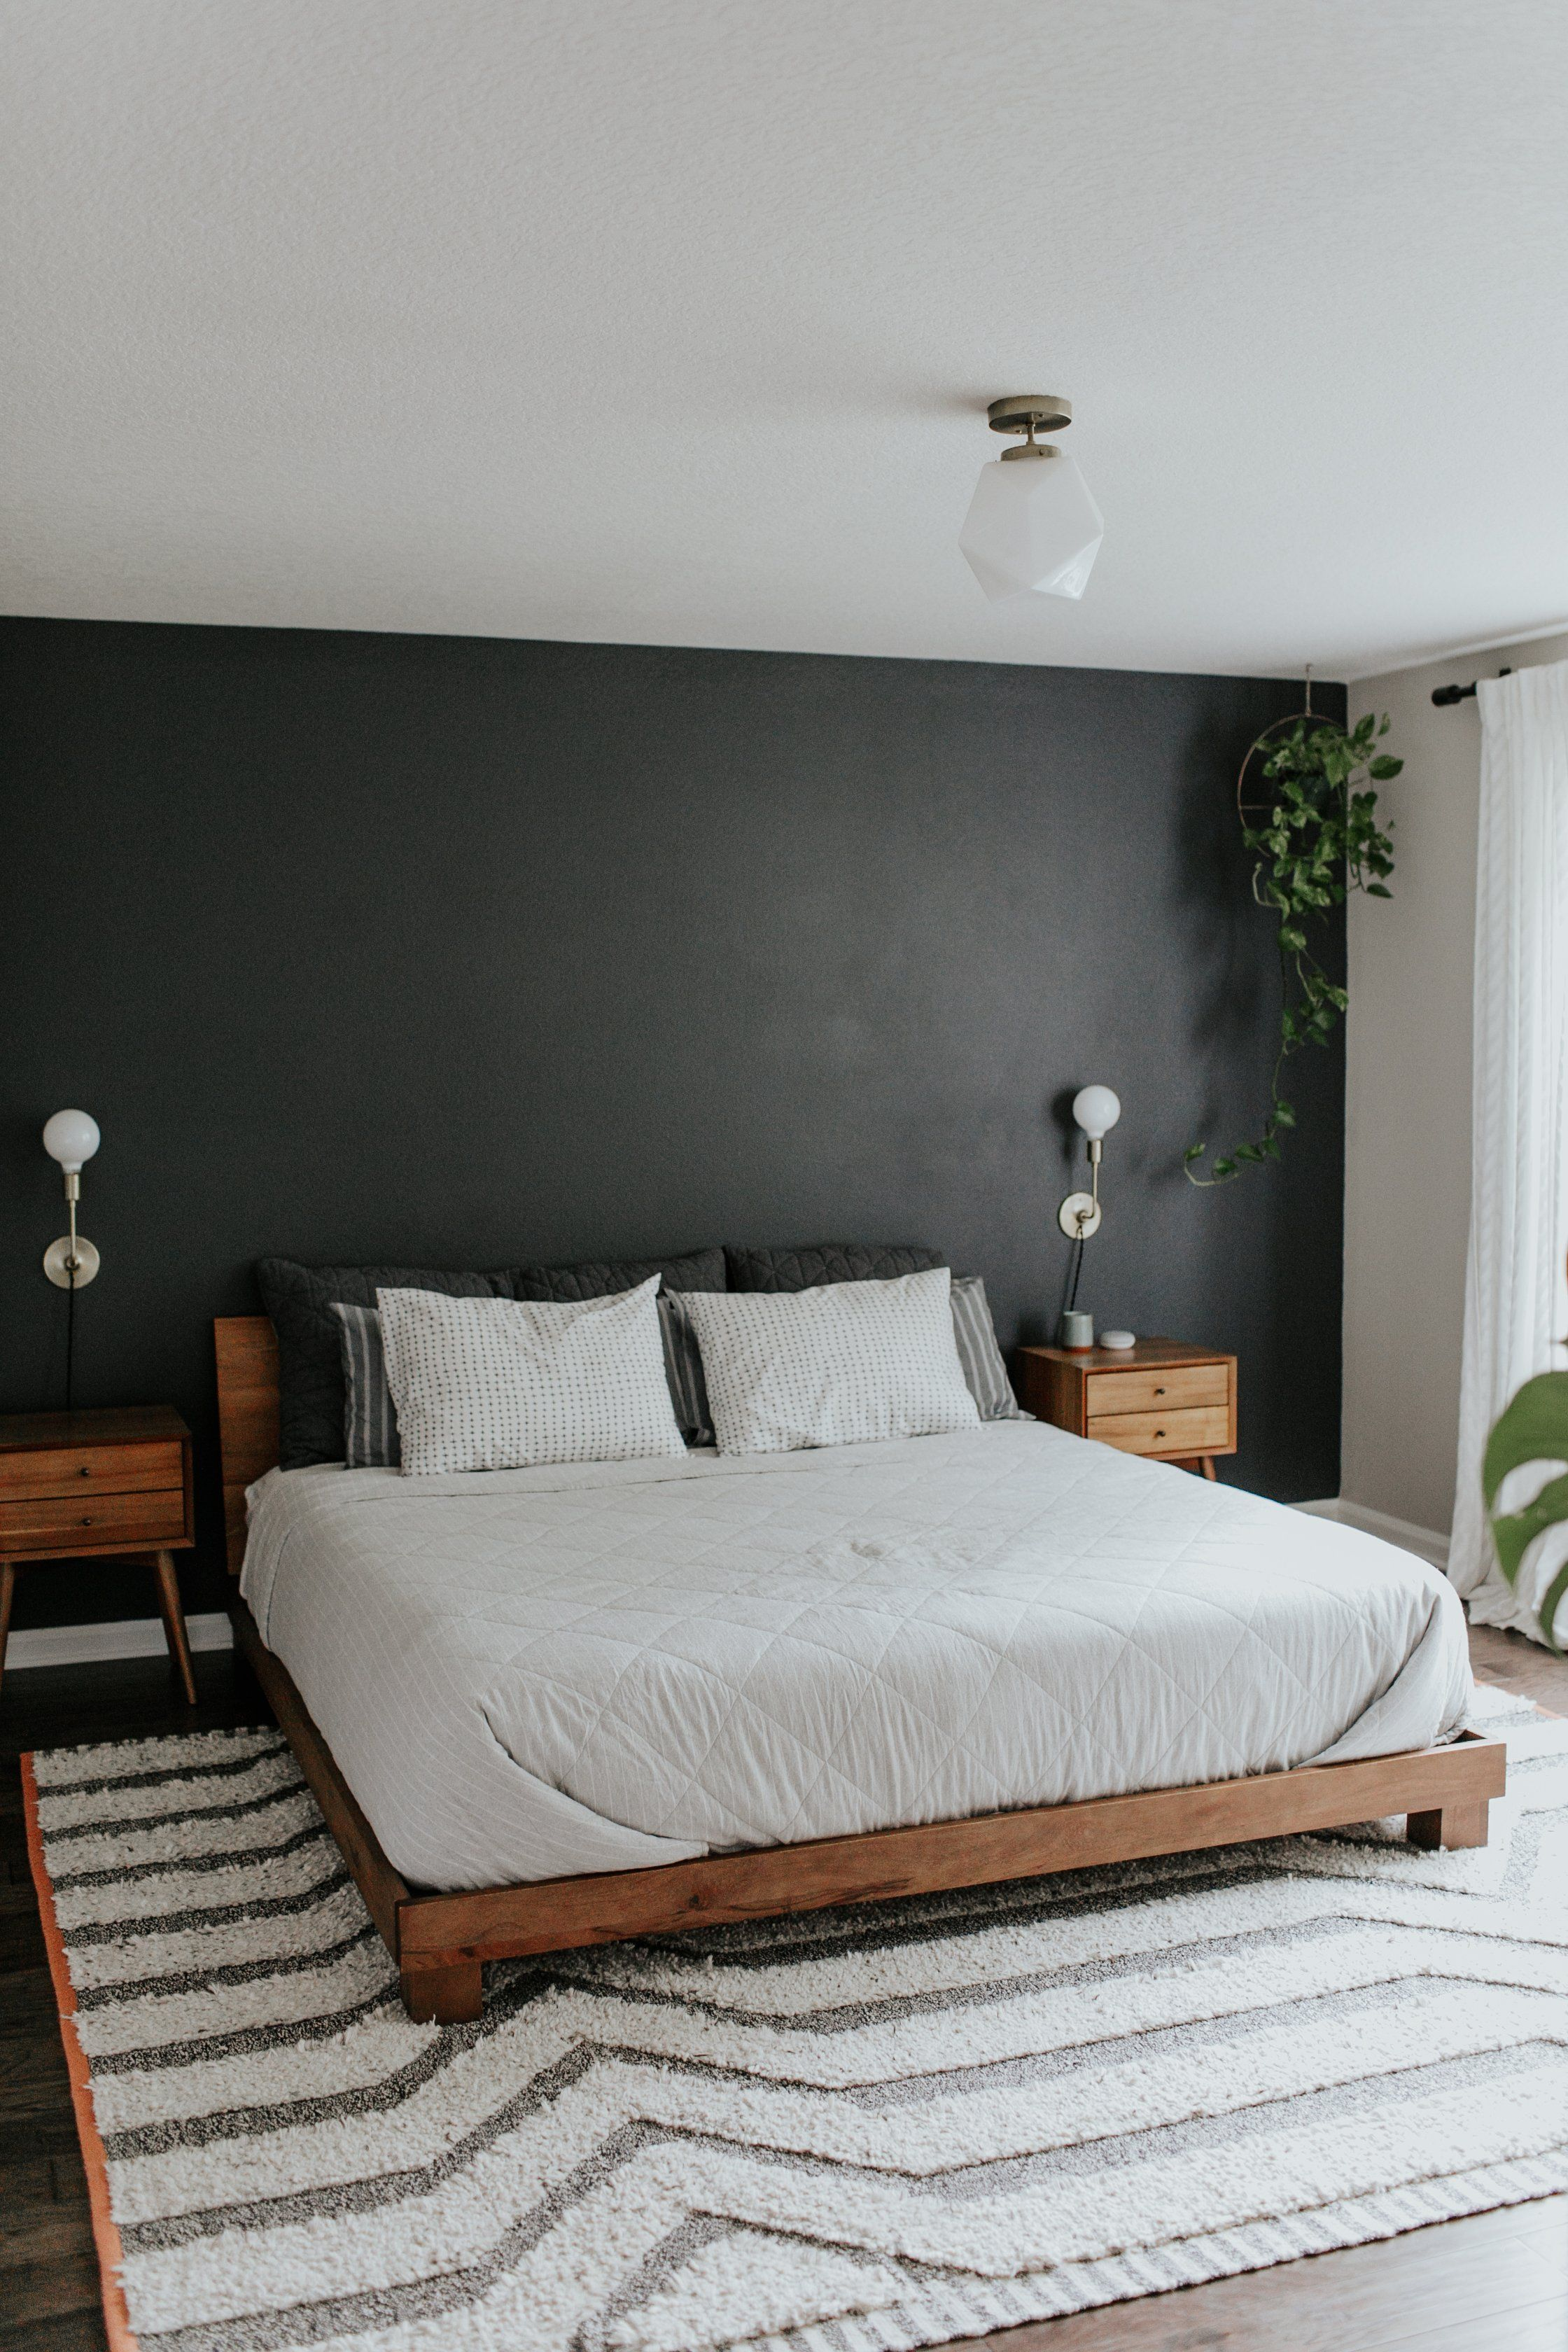 These Modern Bedroom Lighting Ideas Are Dang Sexy